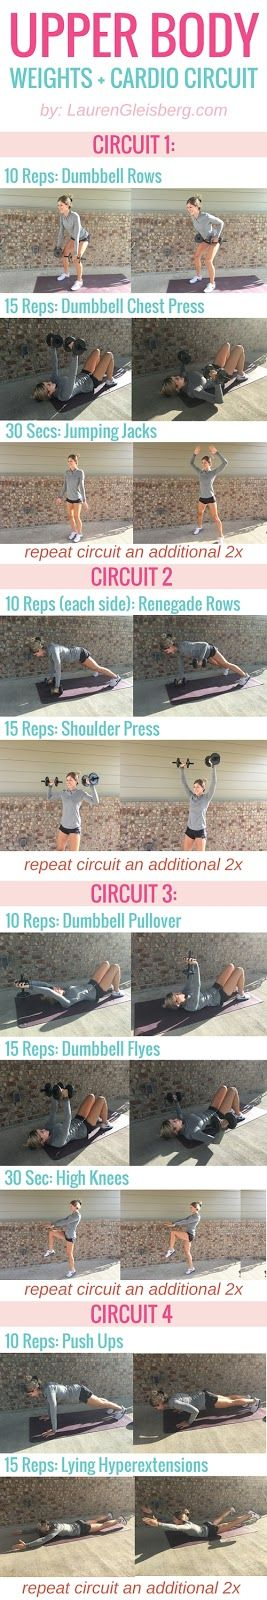 UPPER BODY WEIGHT TRAINING & CARDIO CIRCULE | click for full workout programs